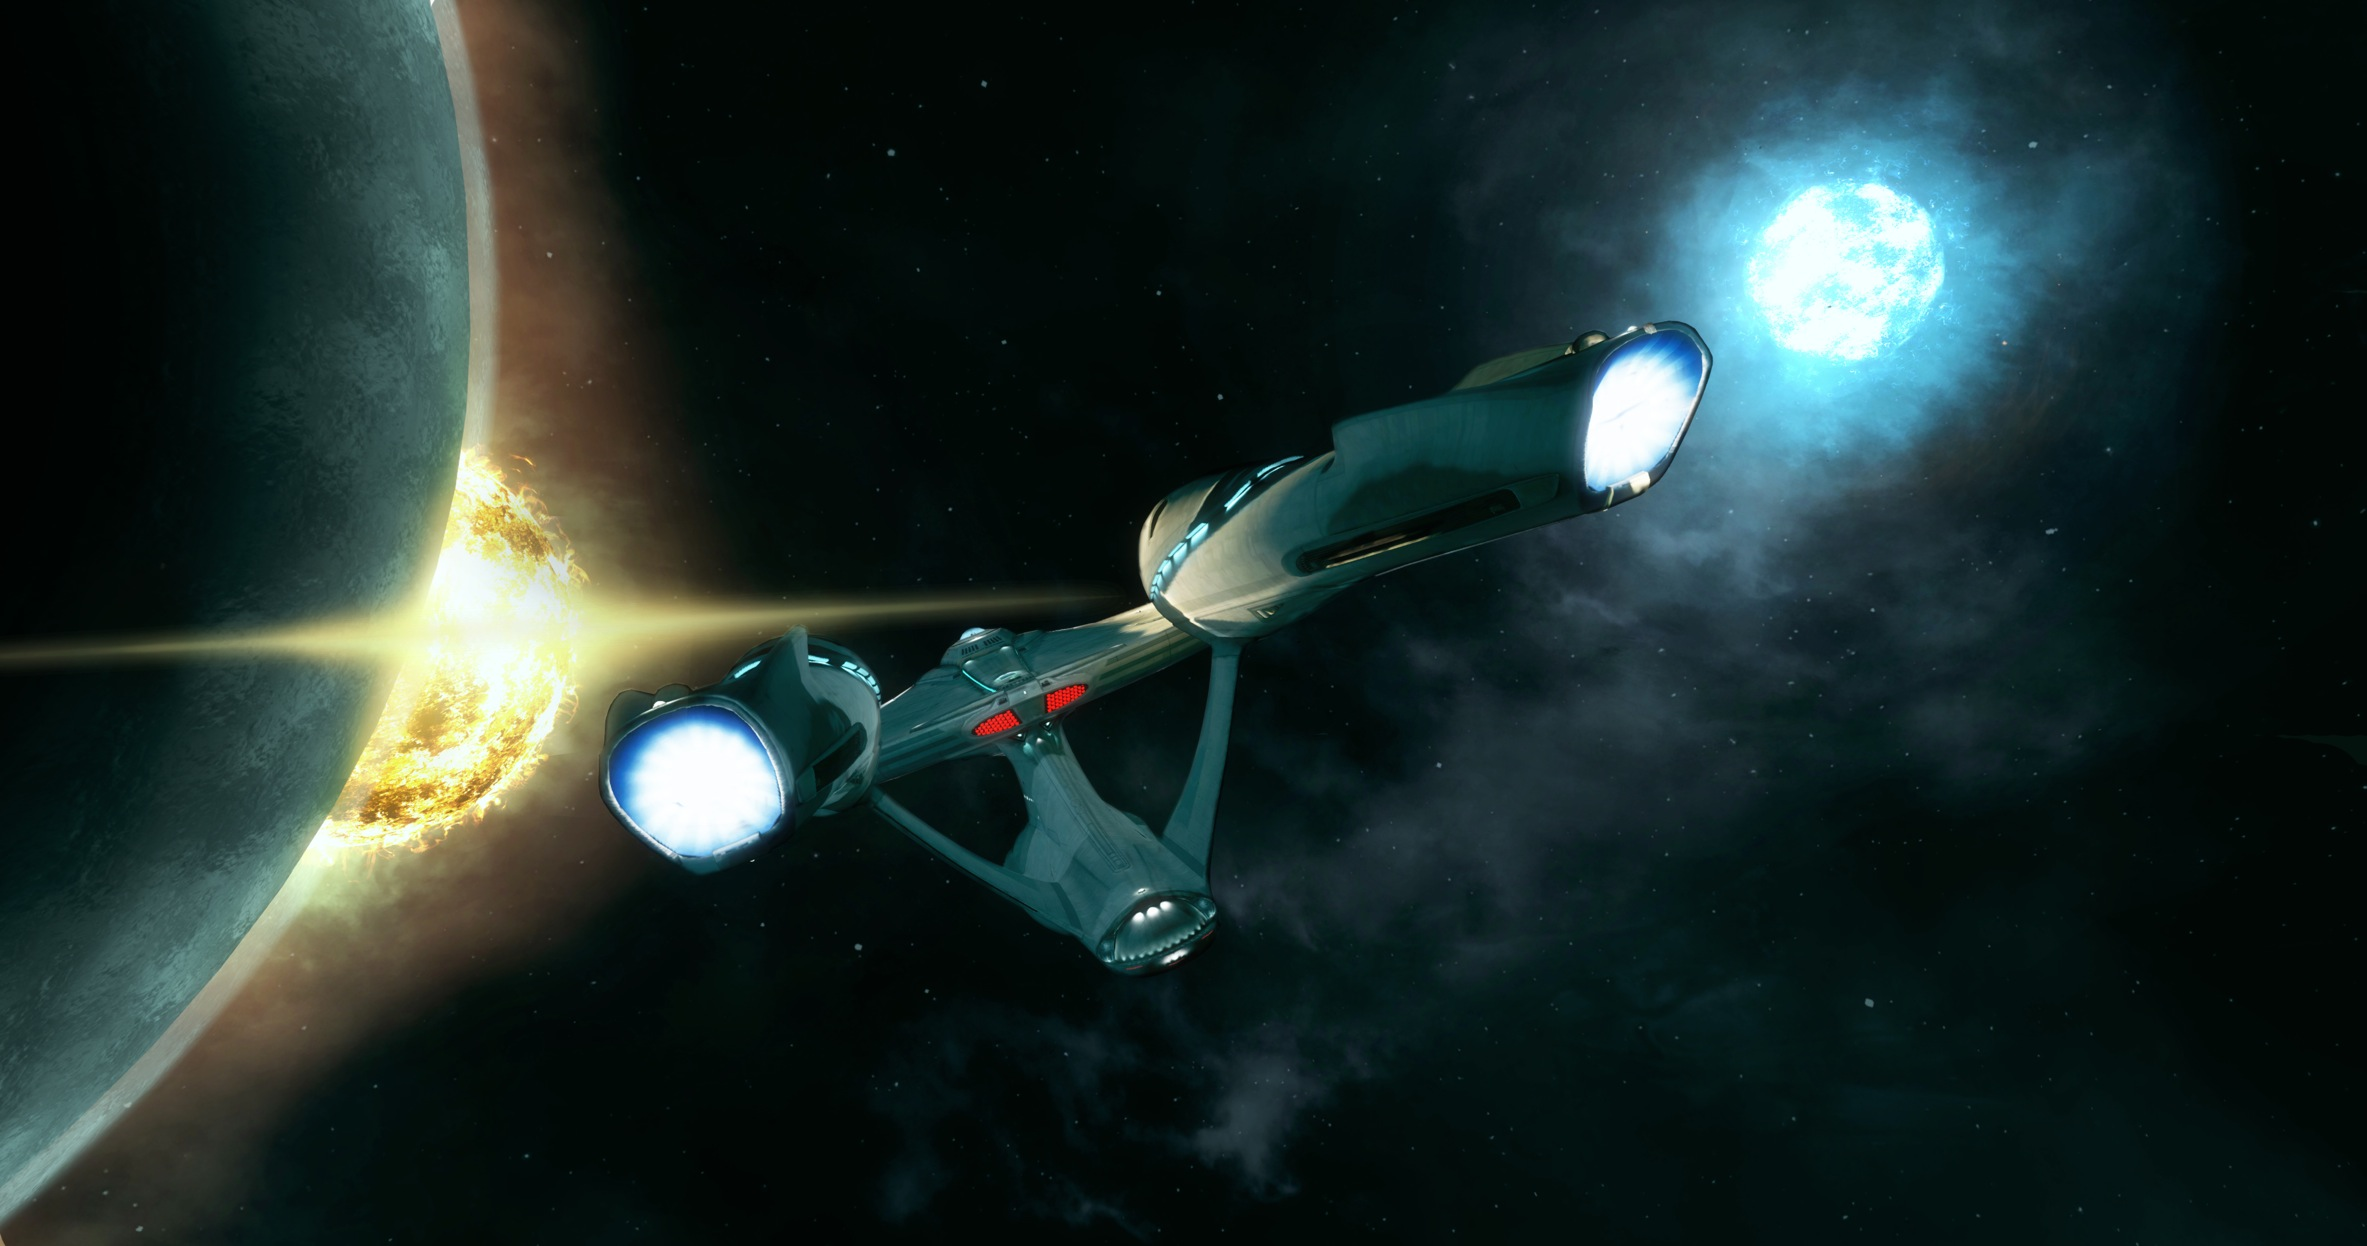 Star Trek: The Video Game 'won't be a throwaway piece of merchandise,' Paramount says